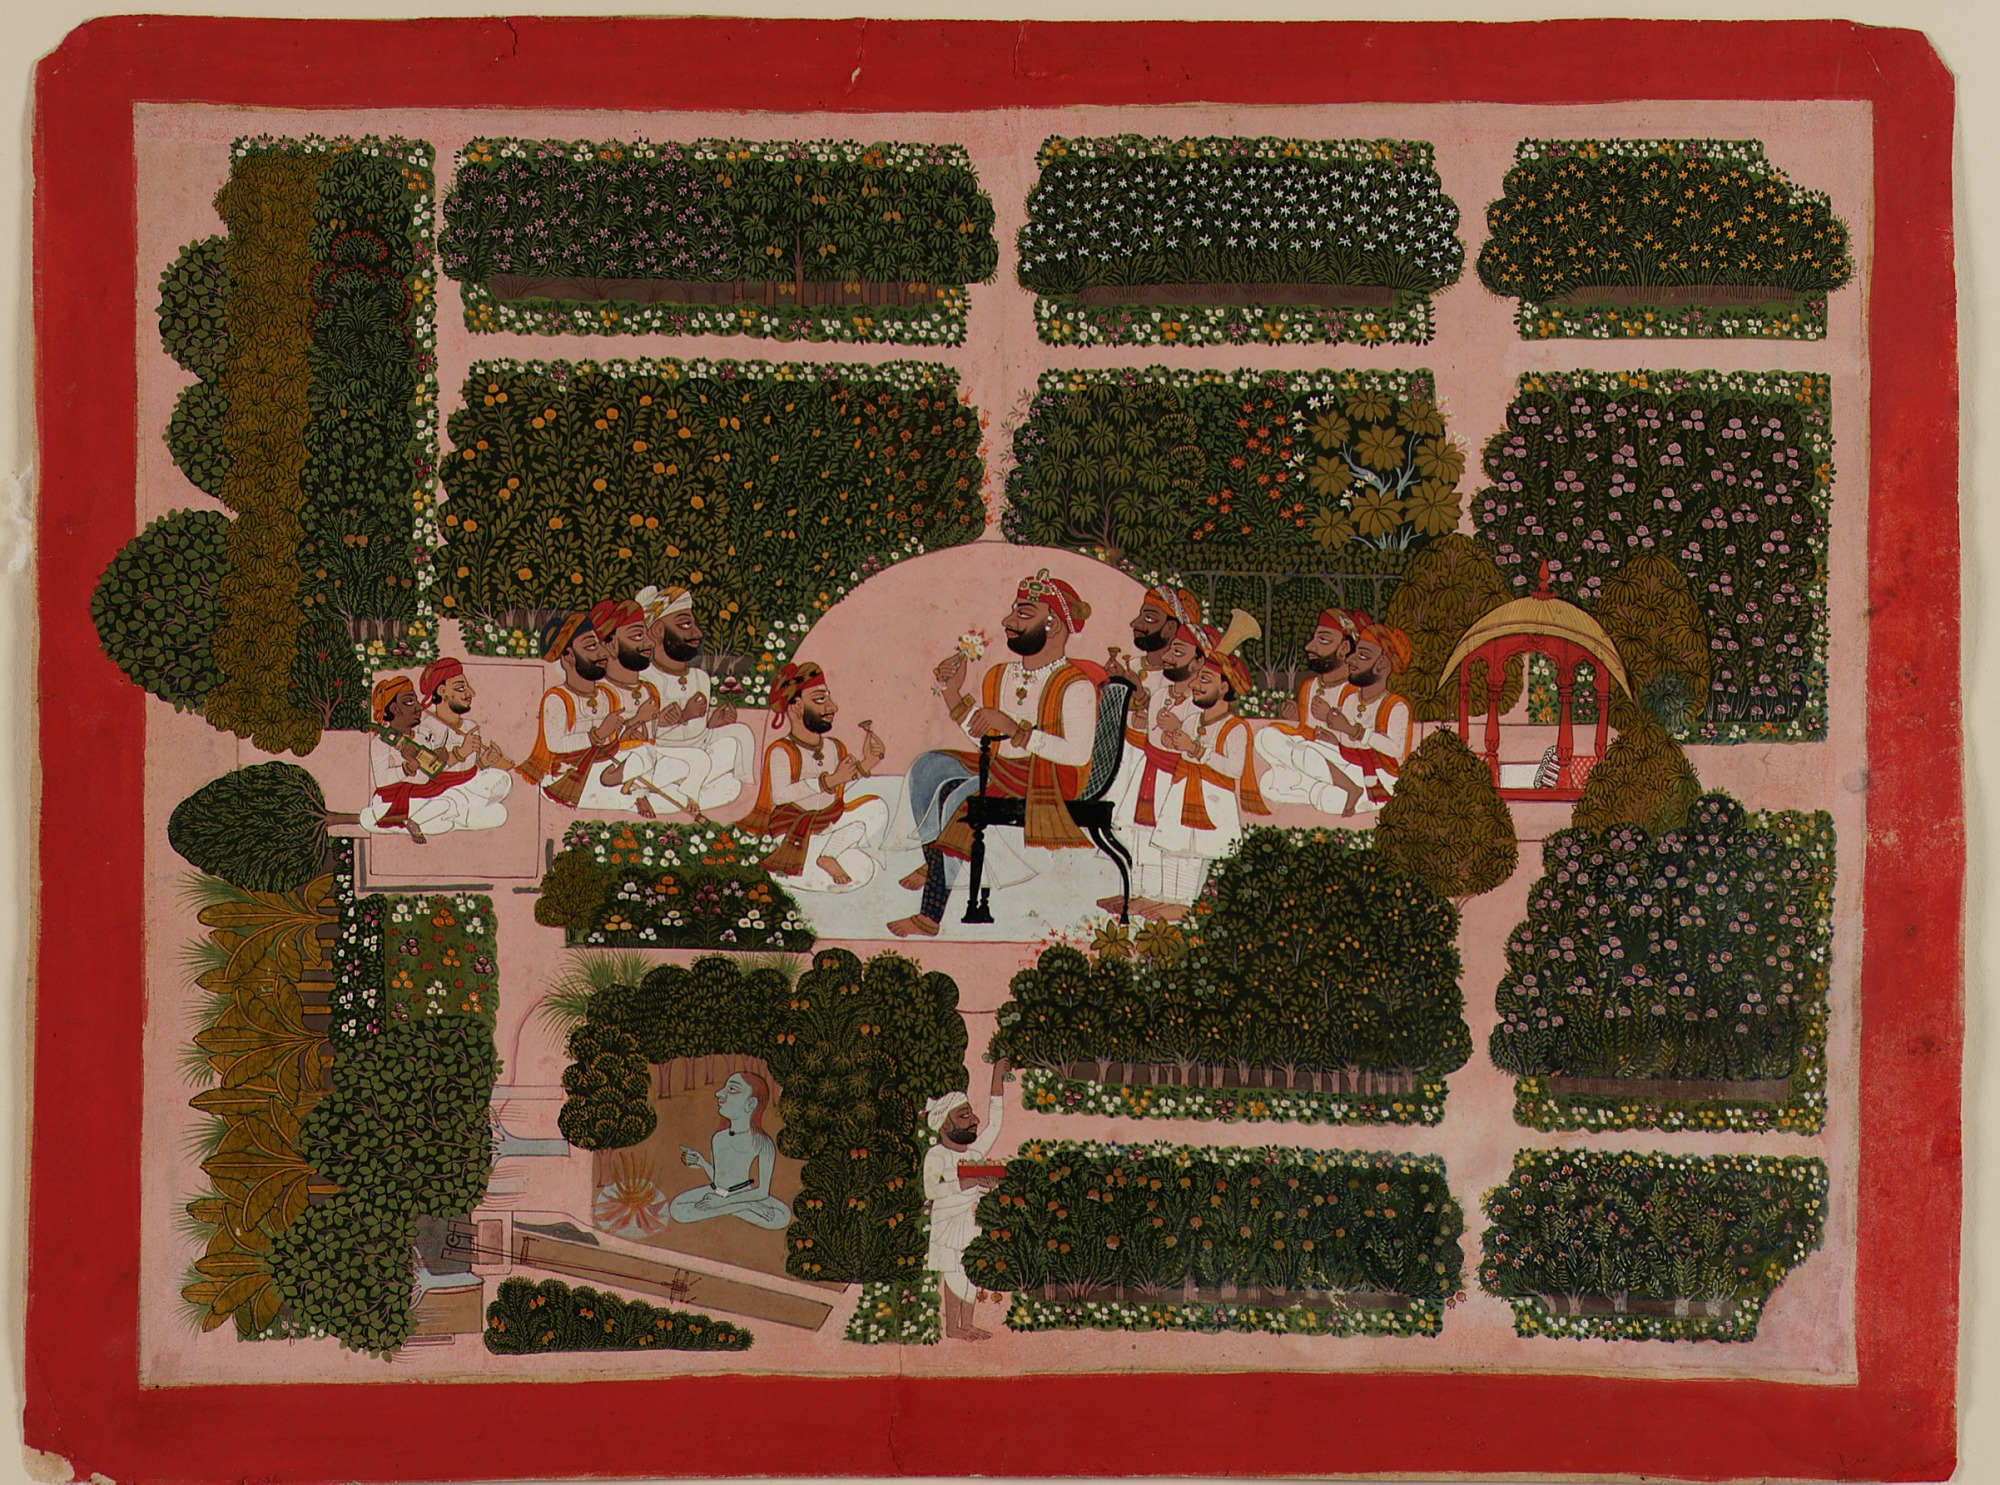 Akhairaj with Courtiers and Musicians in a Garden